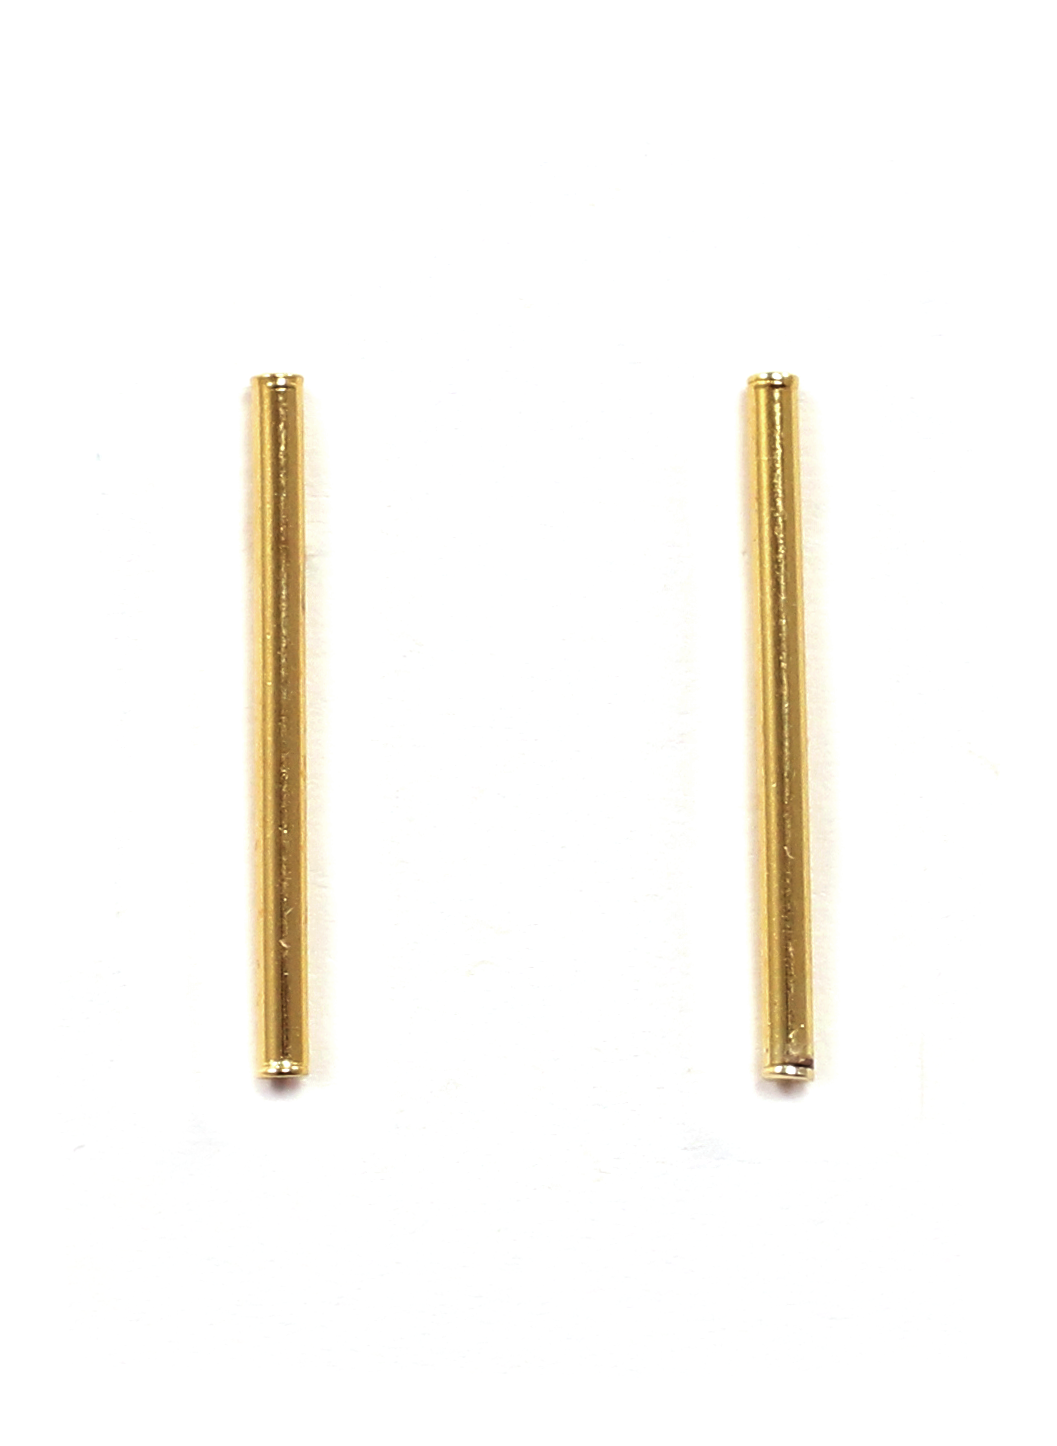 LONG BAR EARRINGS IN GOLD